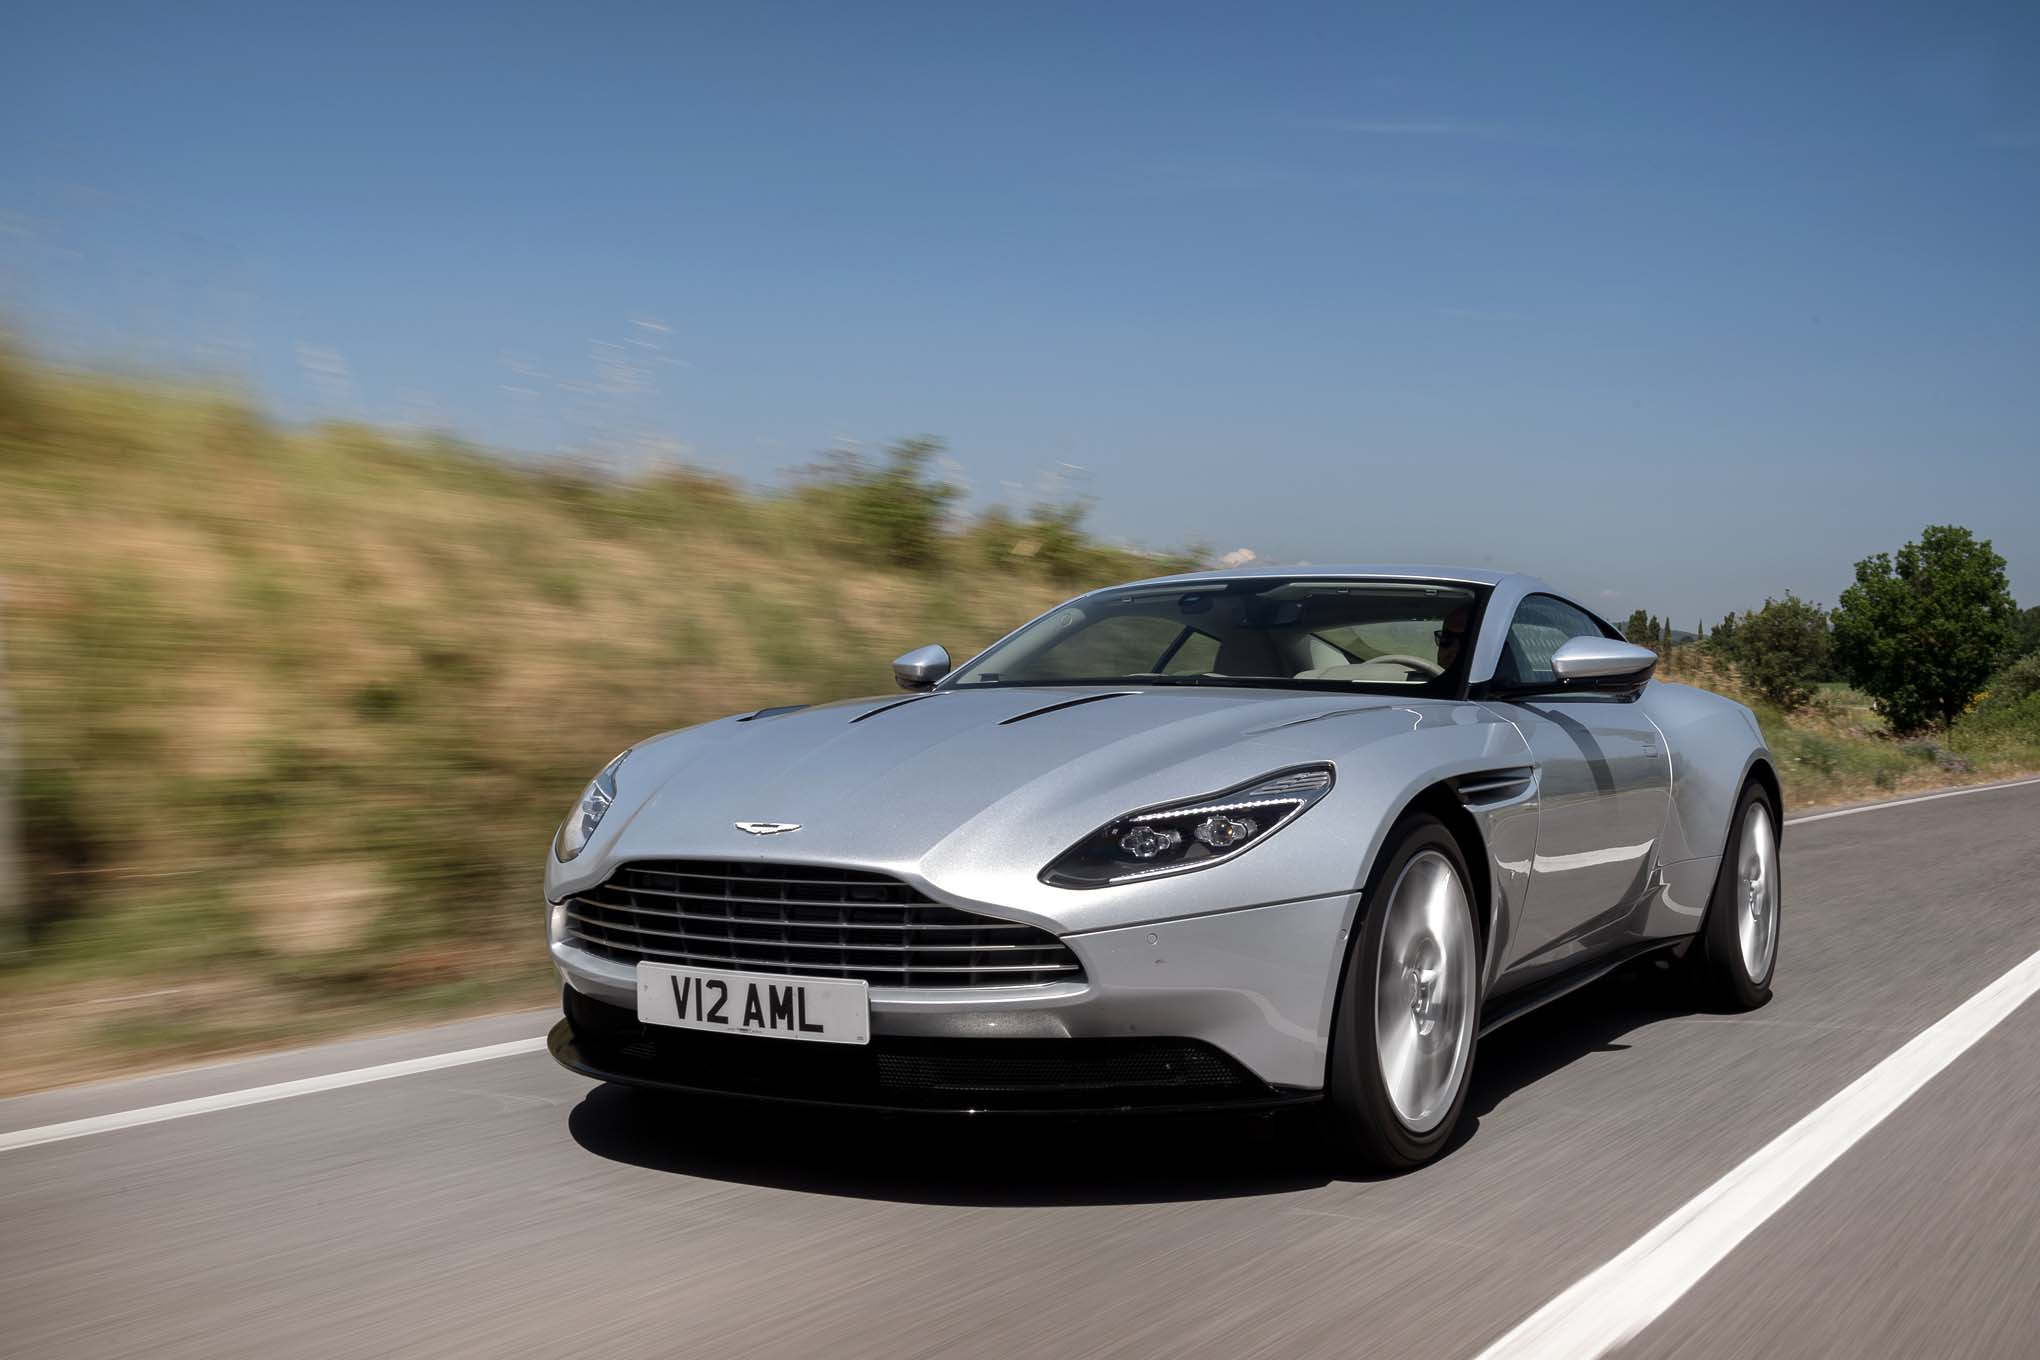 2017 Aston Martin DB11 Front Three Quarter In Motion 04 1